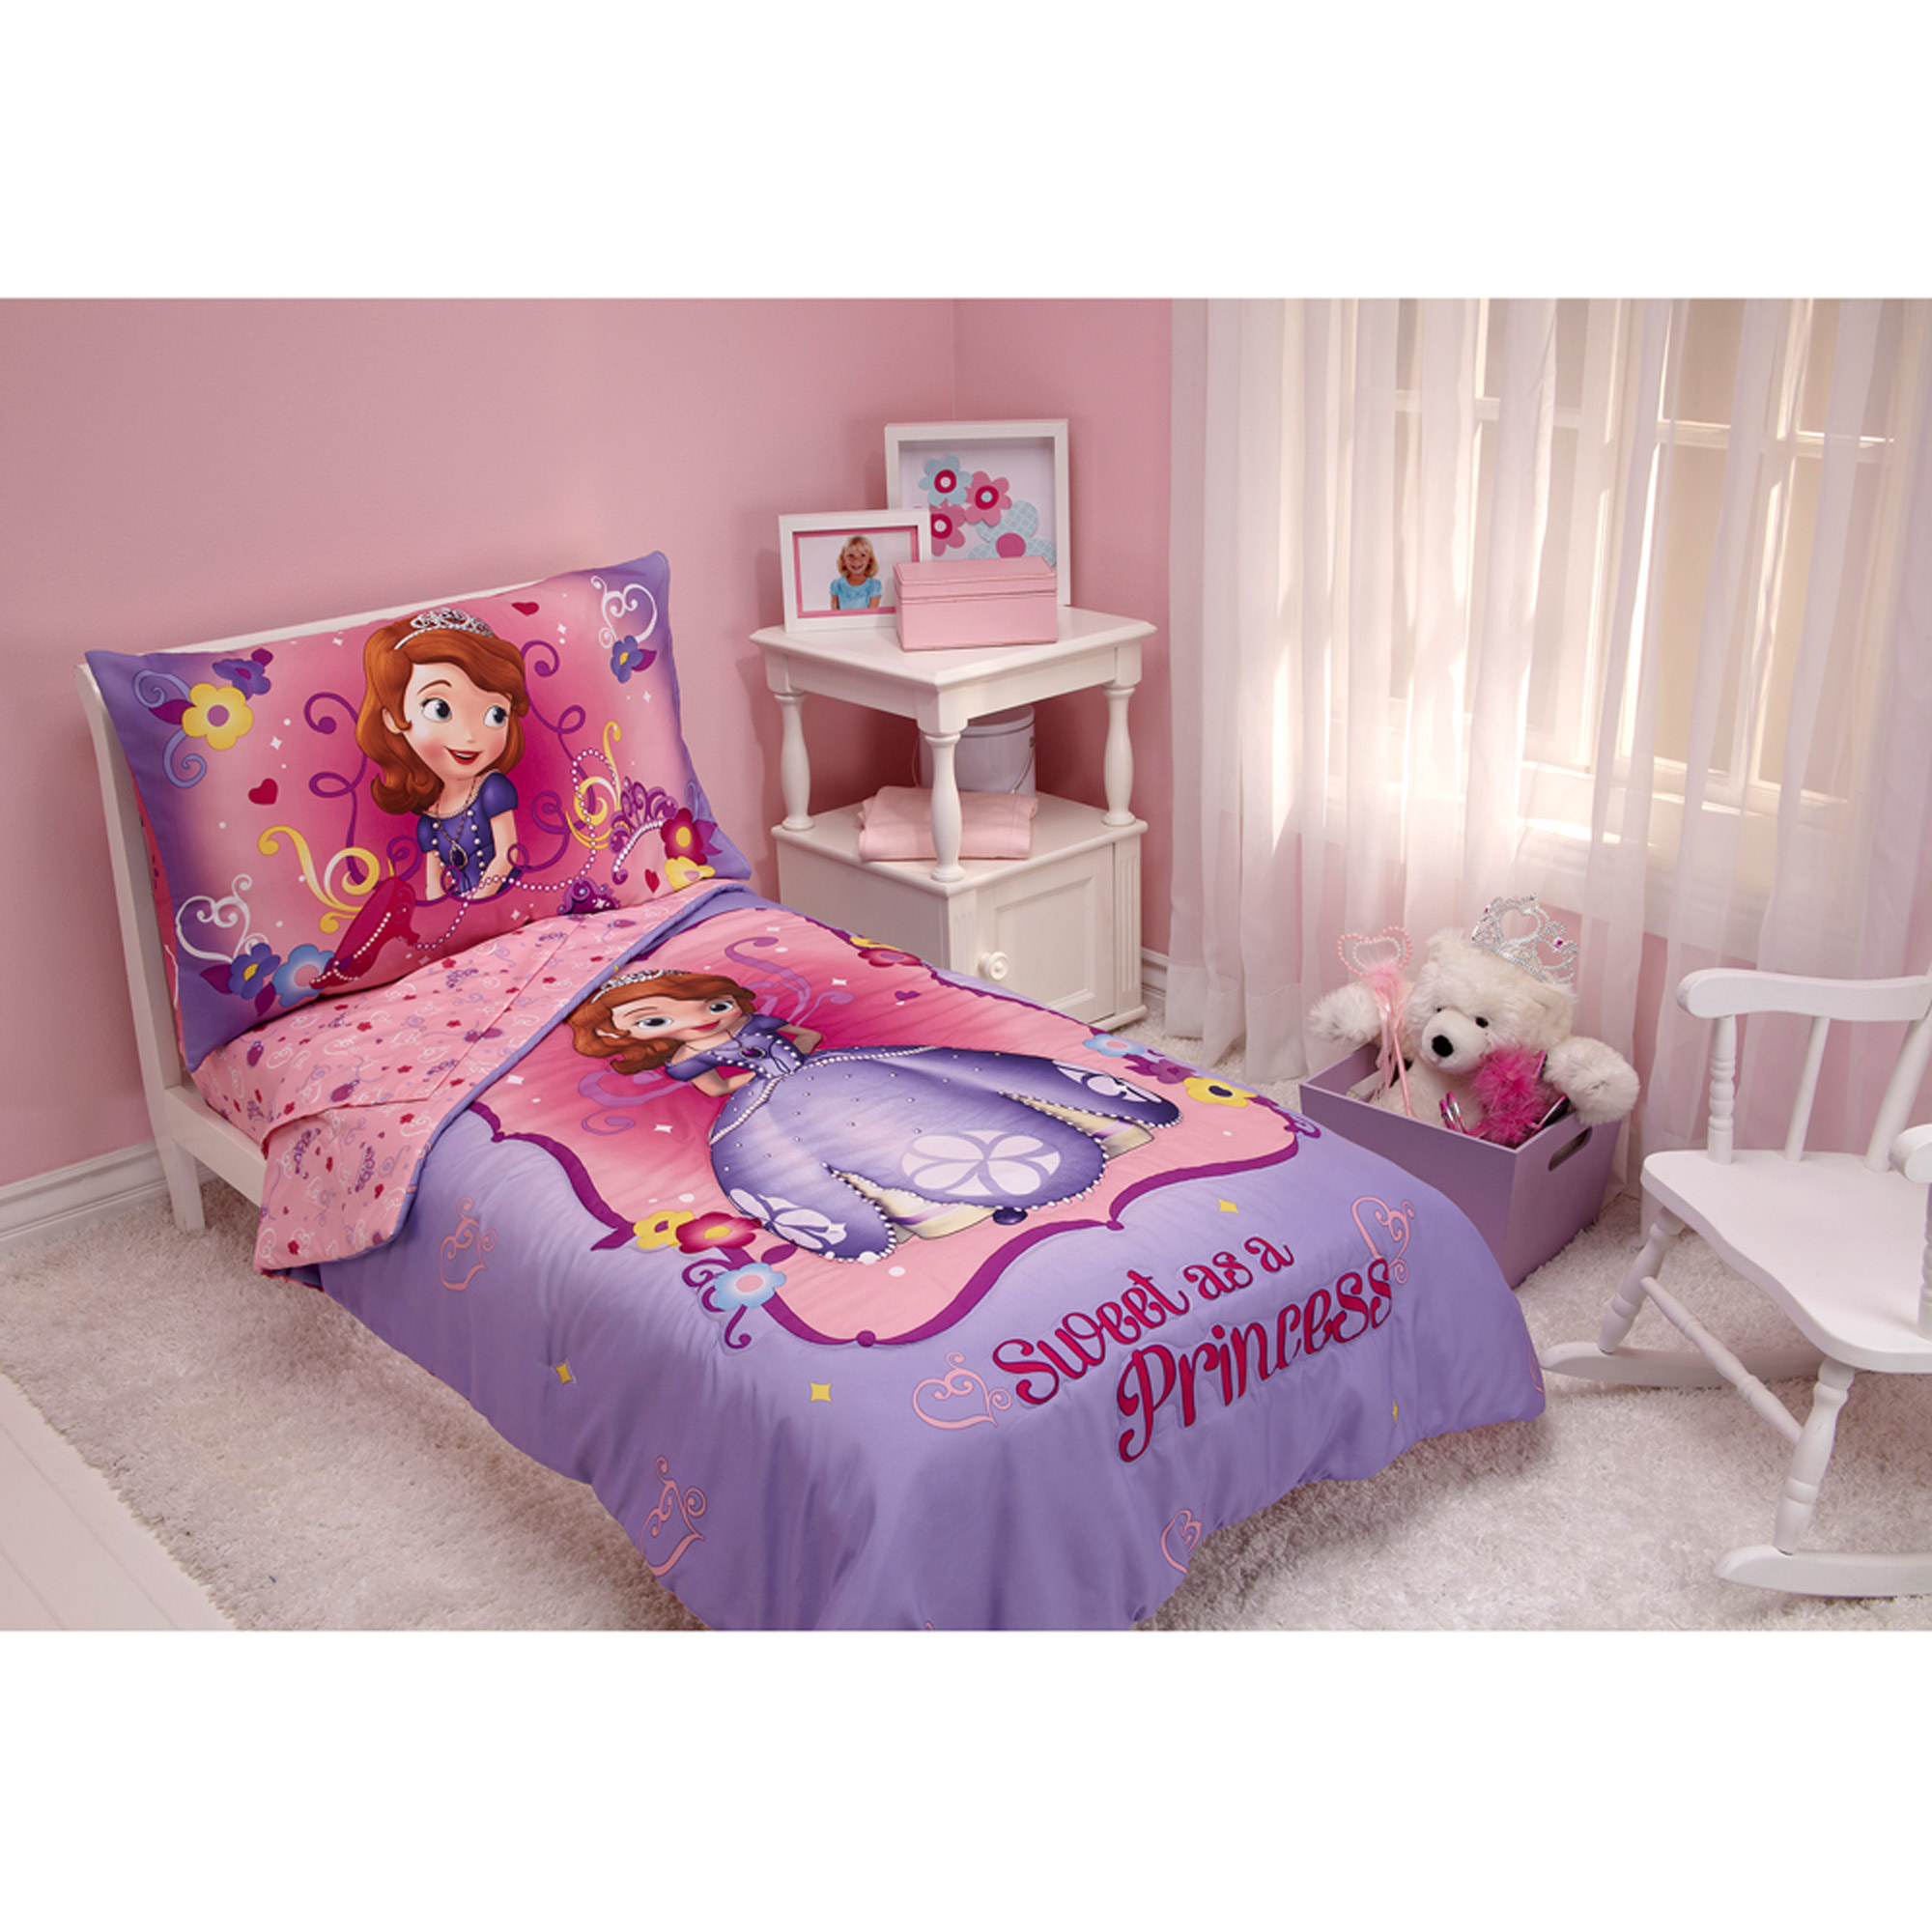 Beautiful Disney Sofia The First 3pc Toddler Bedding Set With BONUS Matching Pillow  Case   Walmart.com